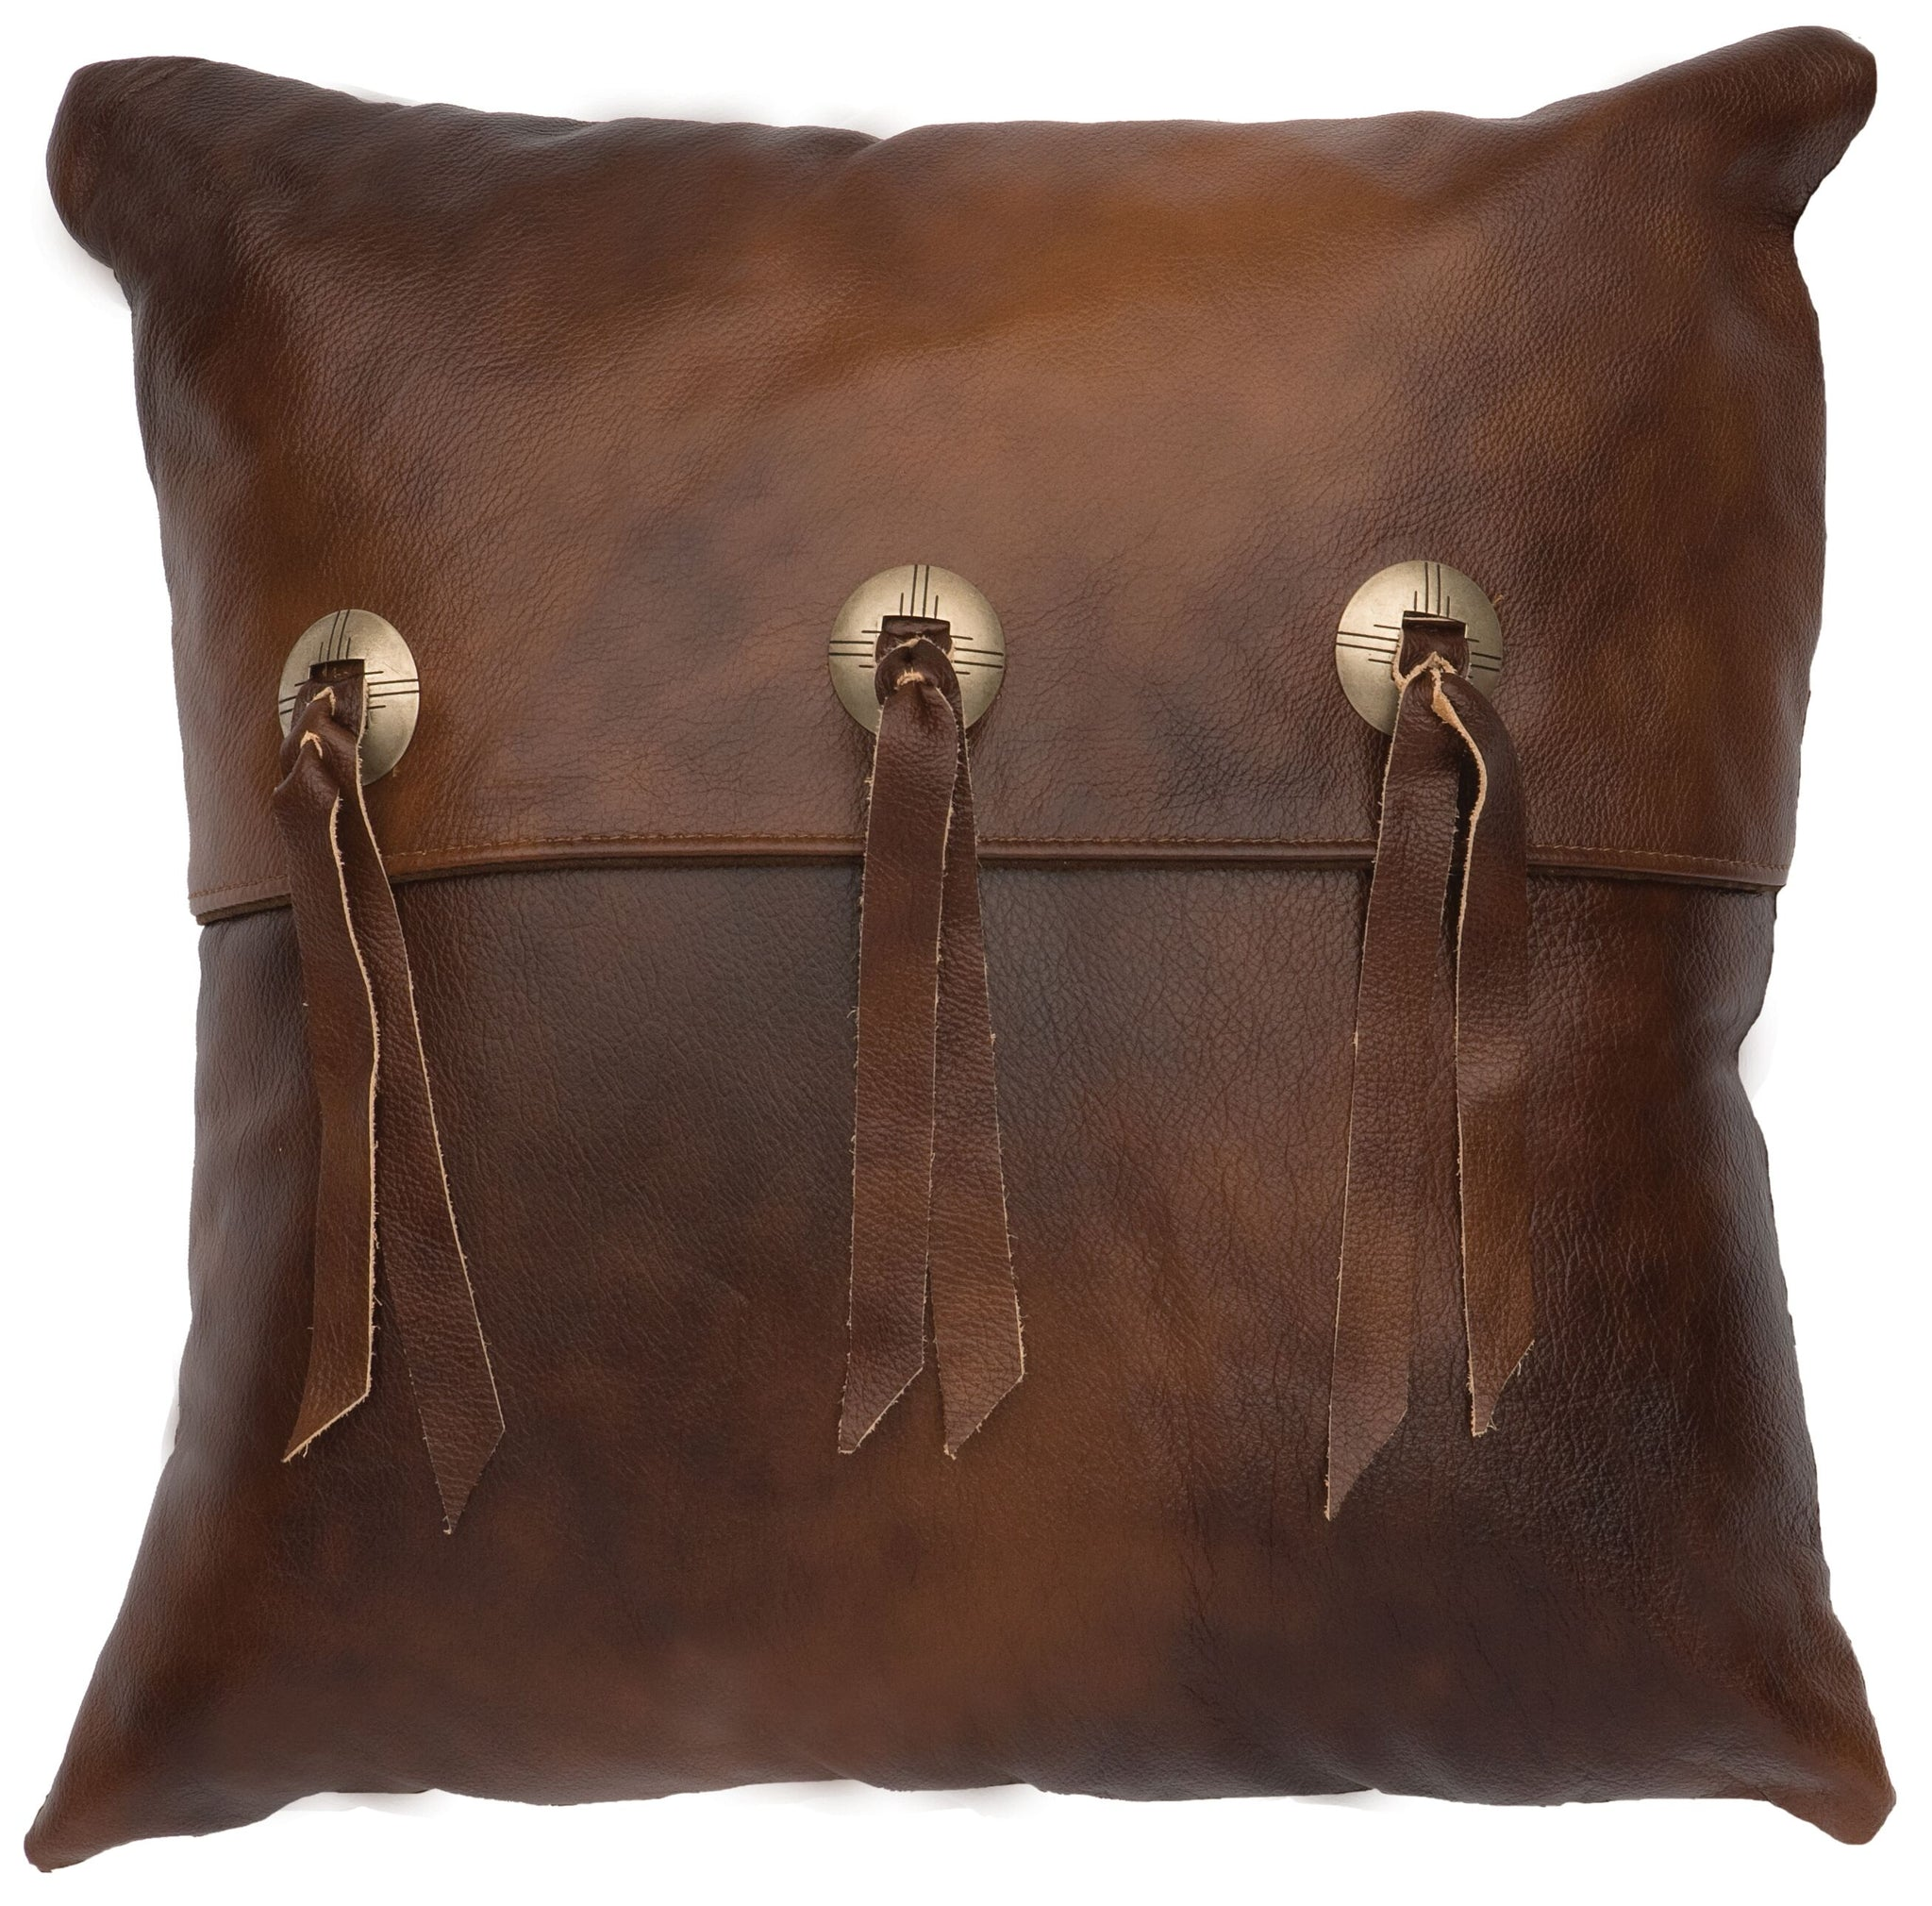 Leather Pillow Wooded River WD80217 - unique linens online